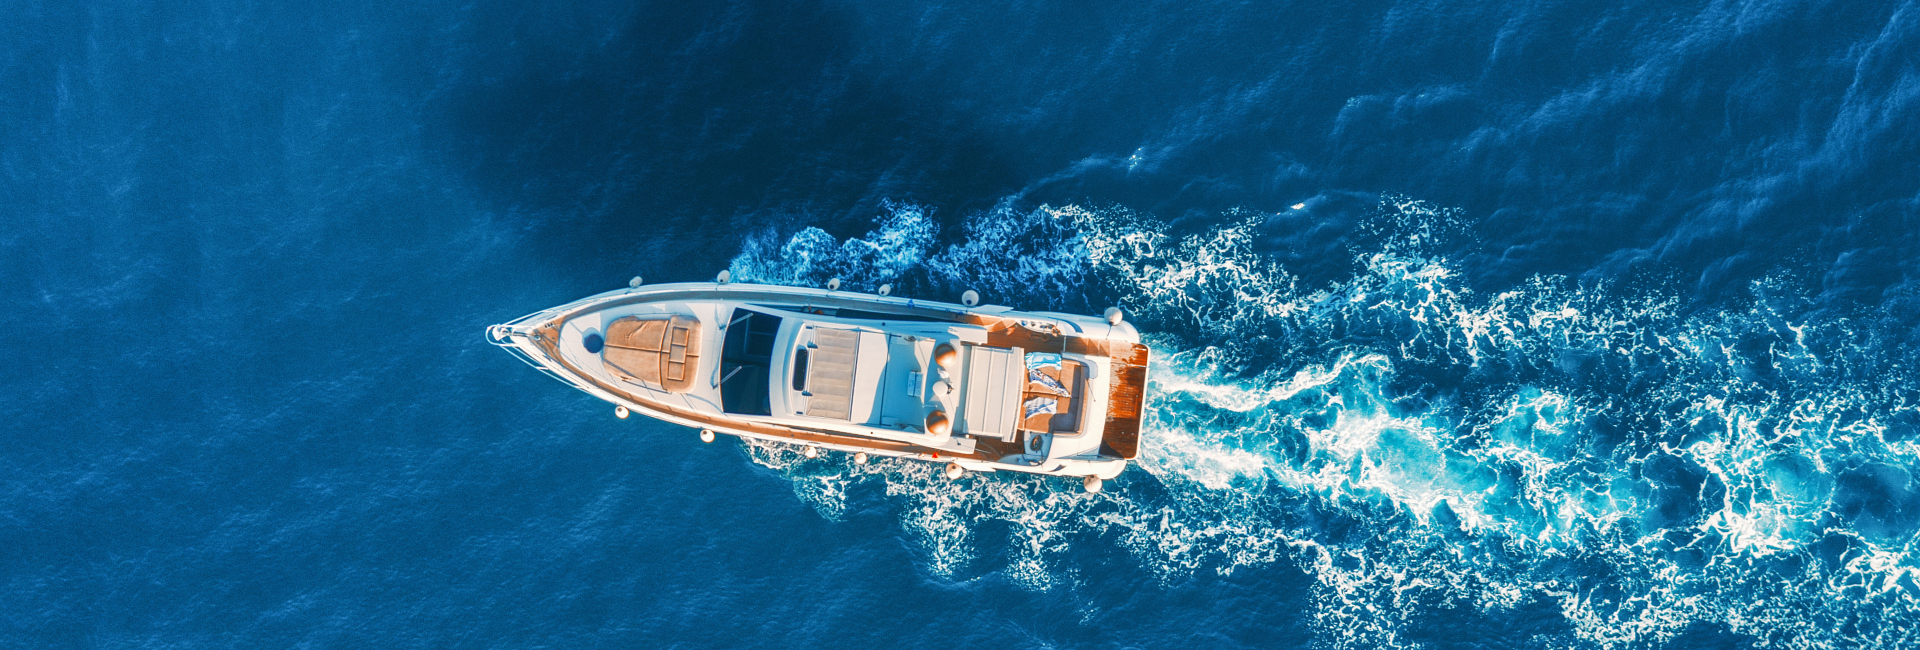 drone shot of a Luxury Yacht Vacation